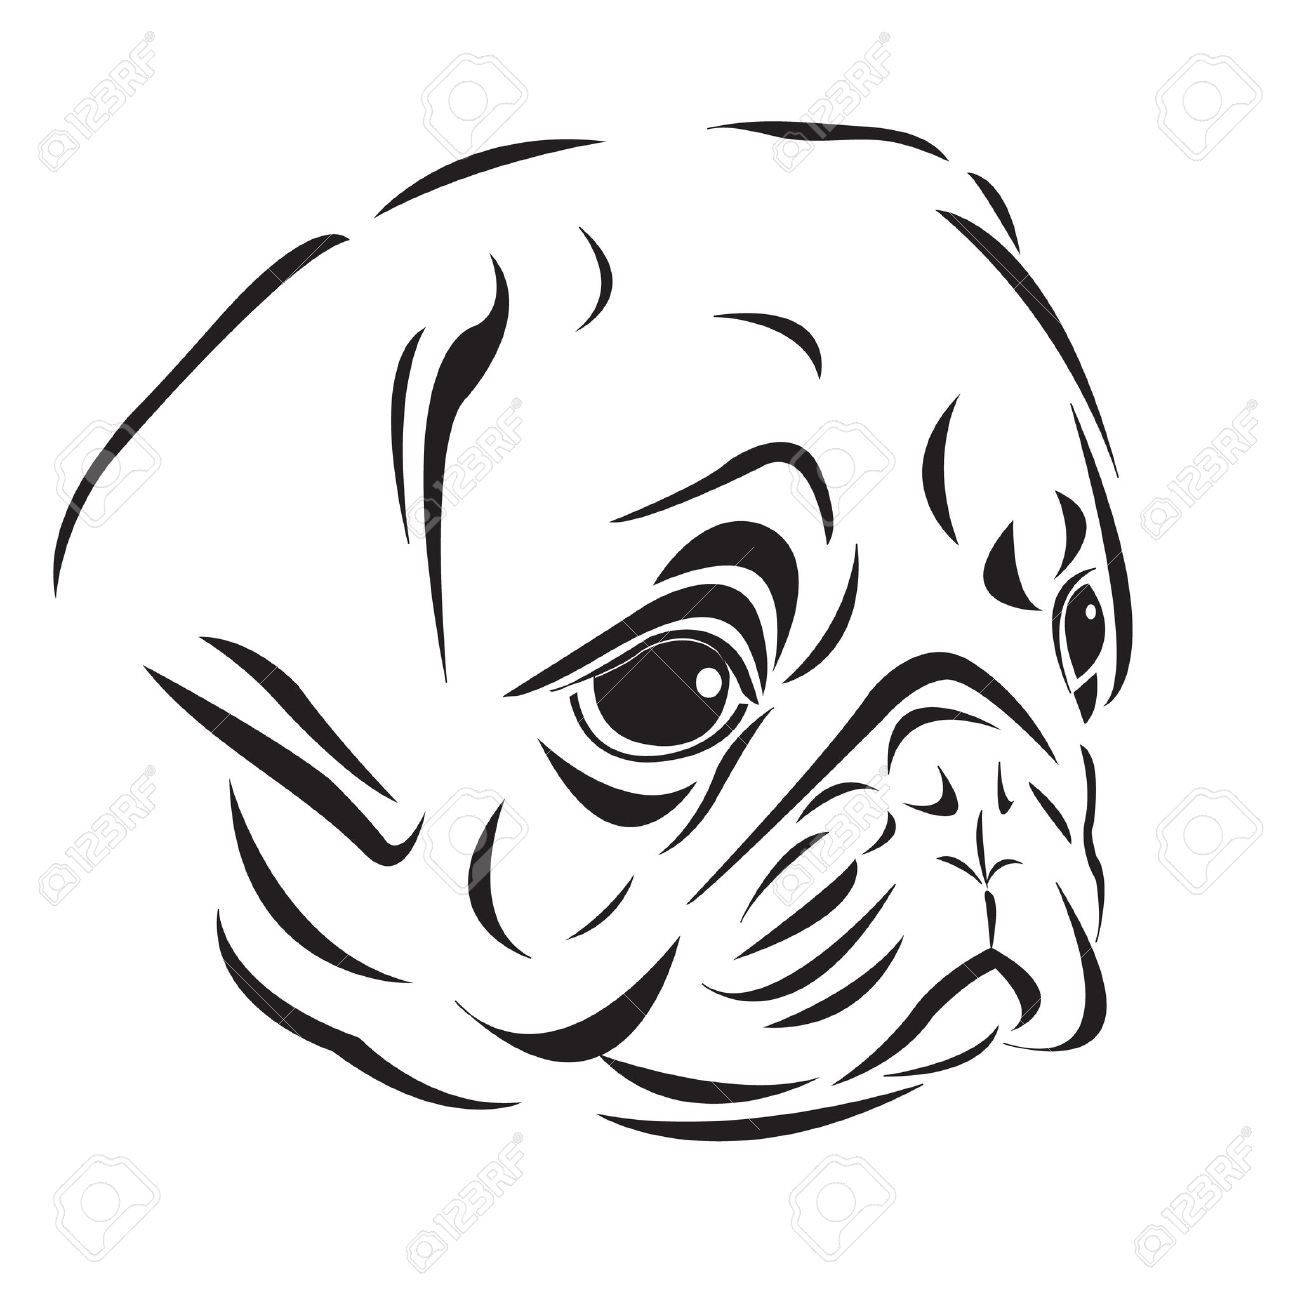 24932890 The Line Art Of Pug Head Stock Vector Dog Jpg 1 300 1 300